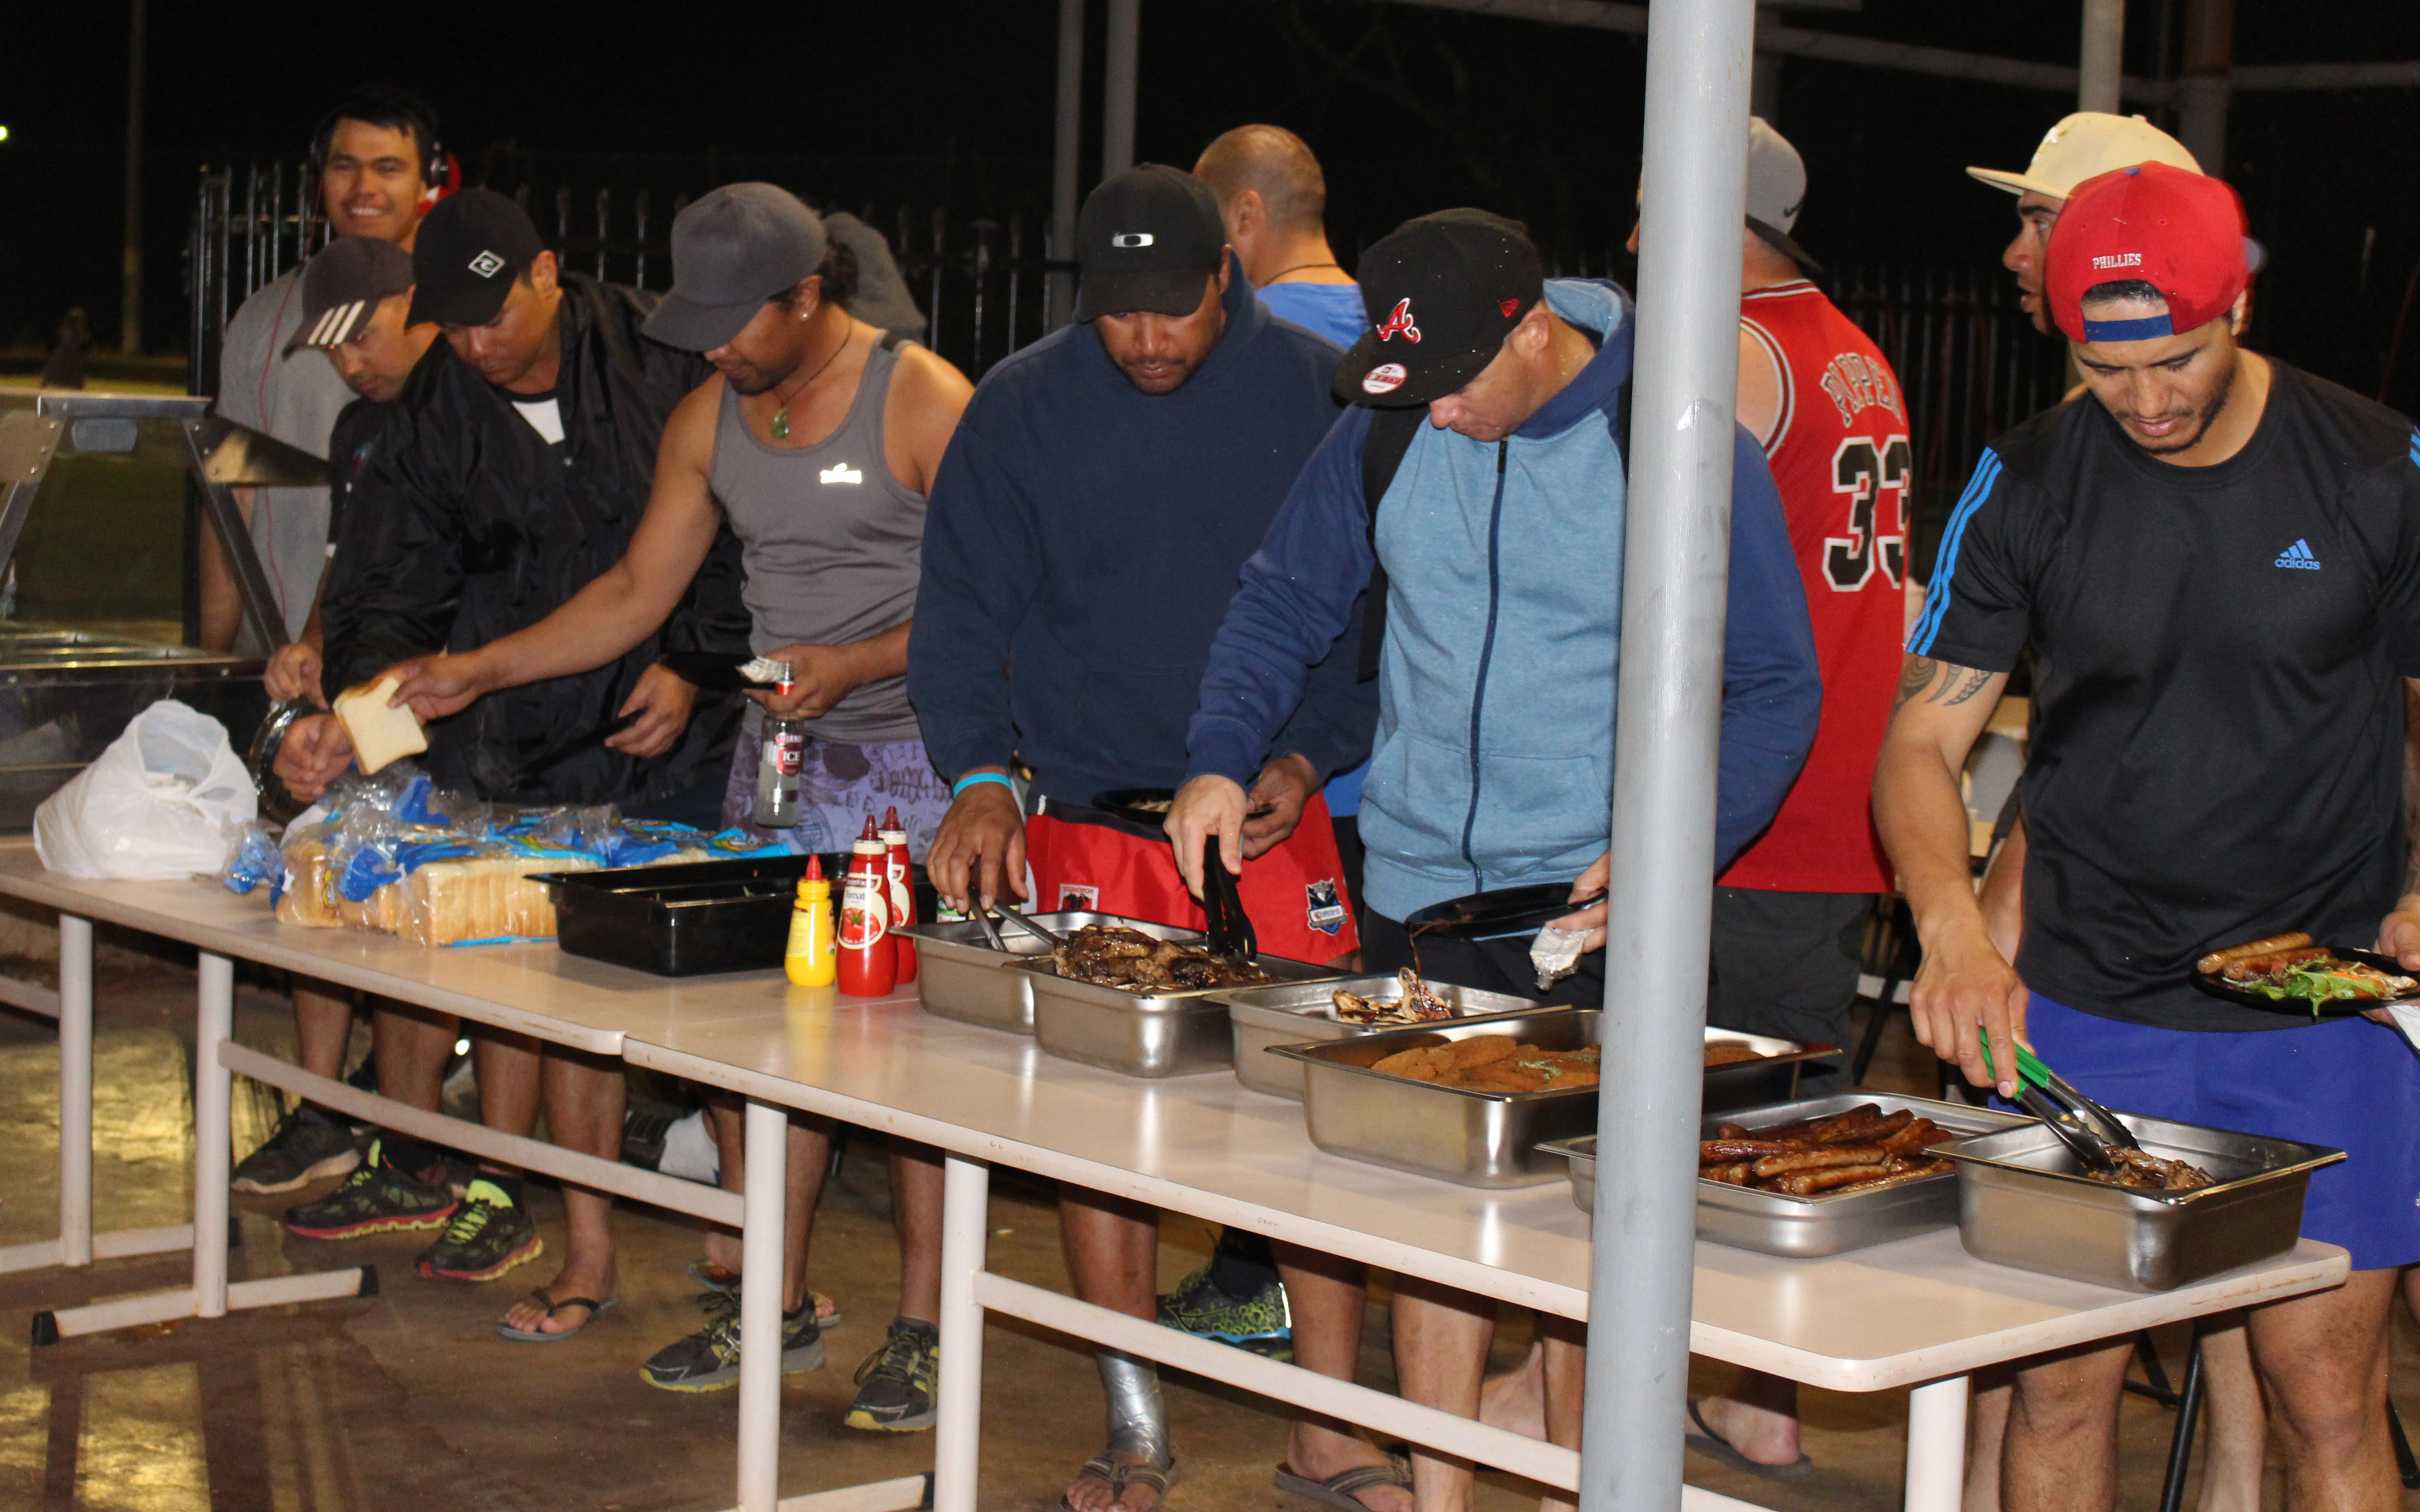 Plating up at Onslow Sports Club for the community barbecue.